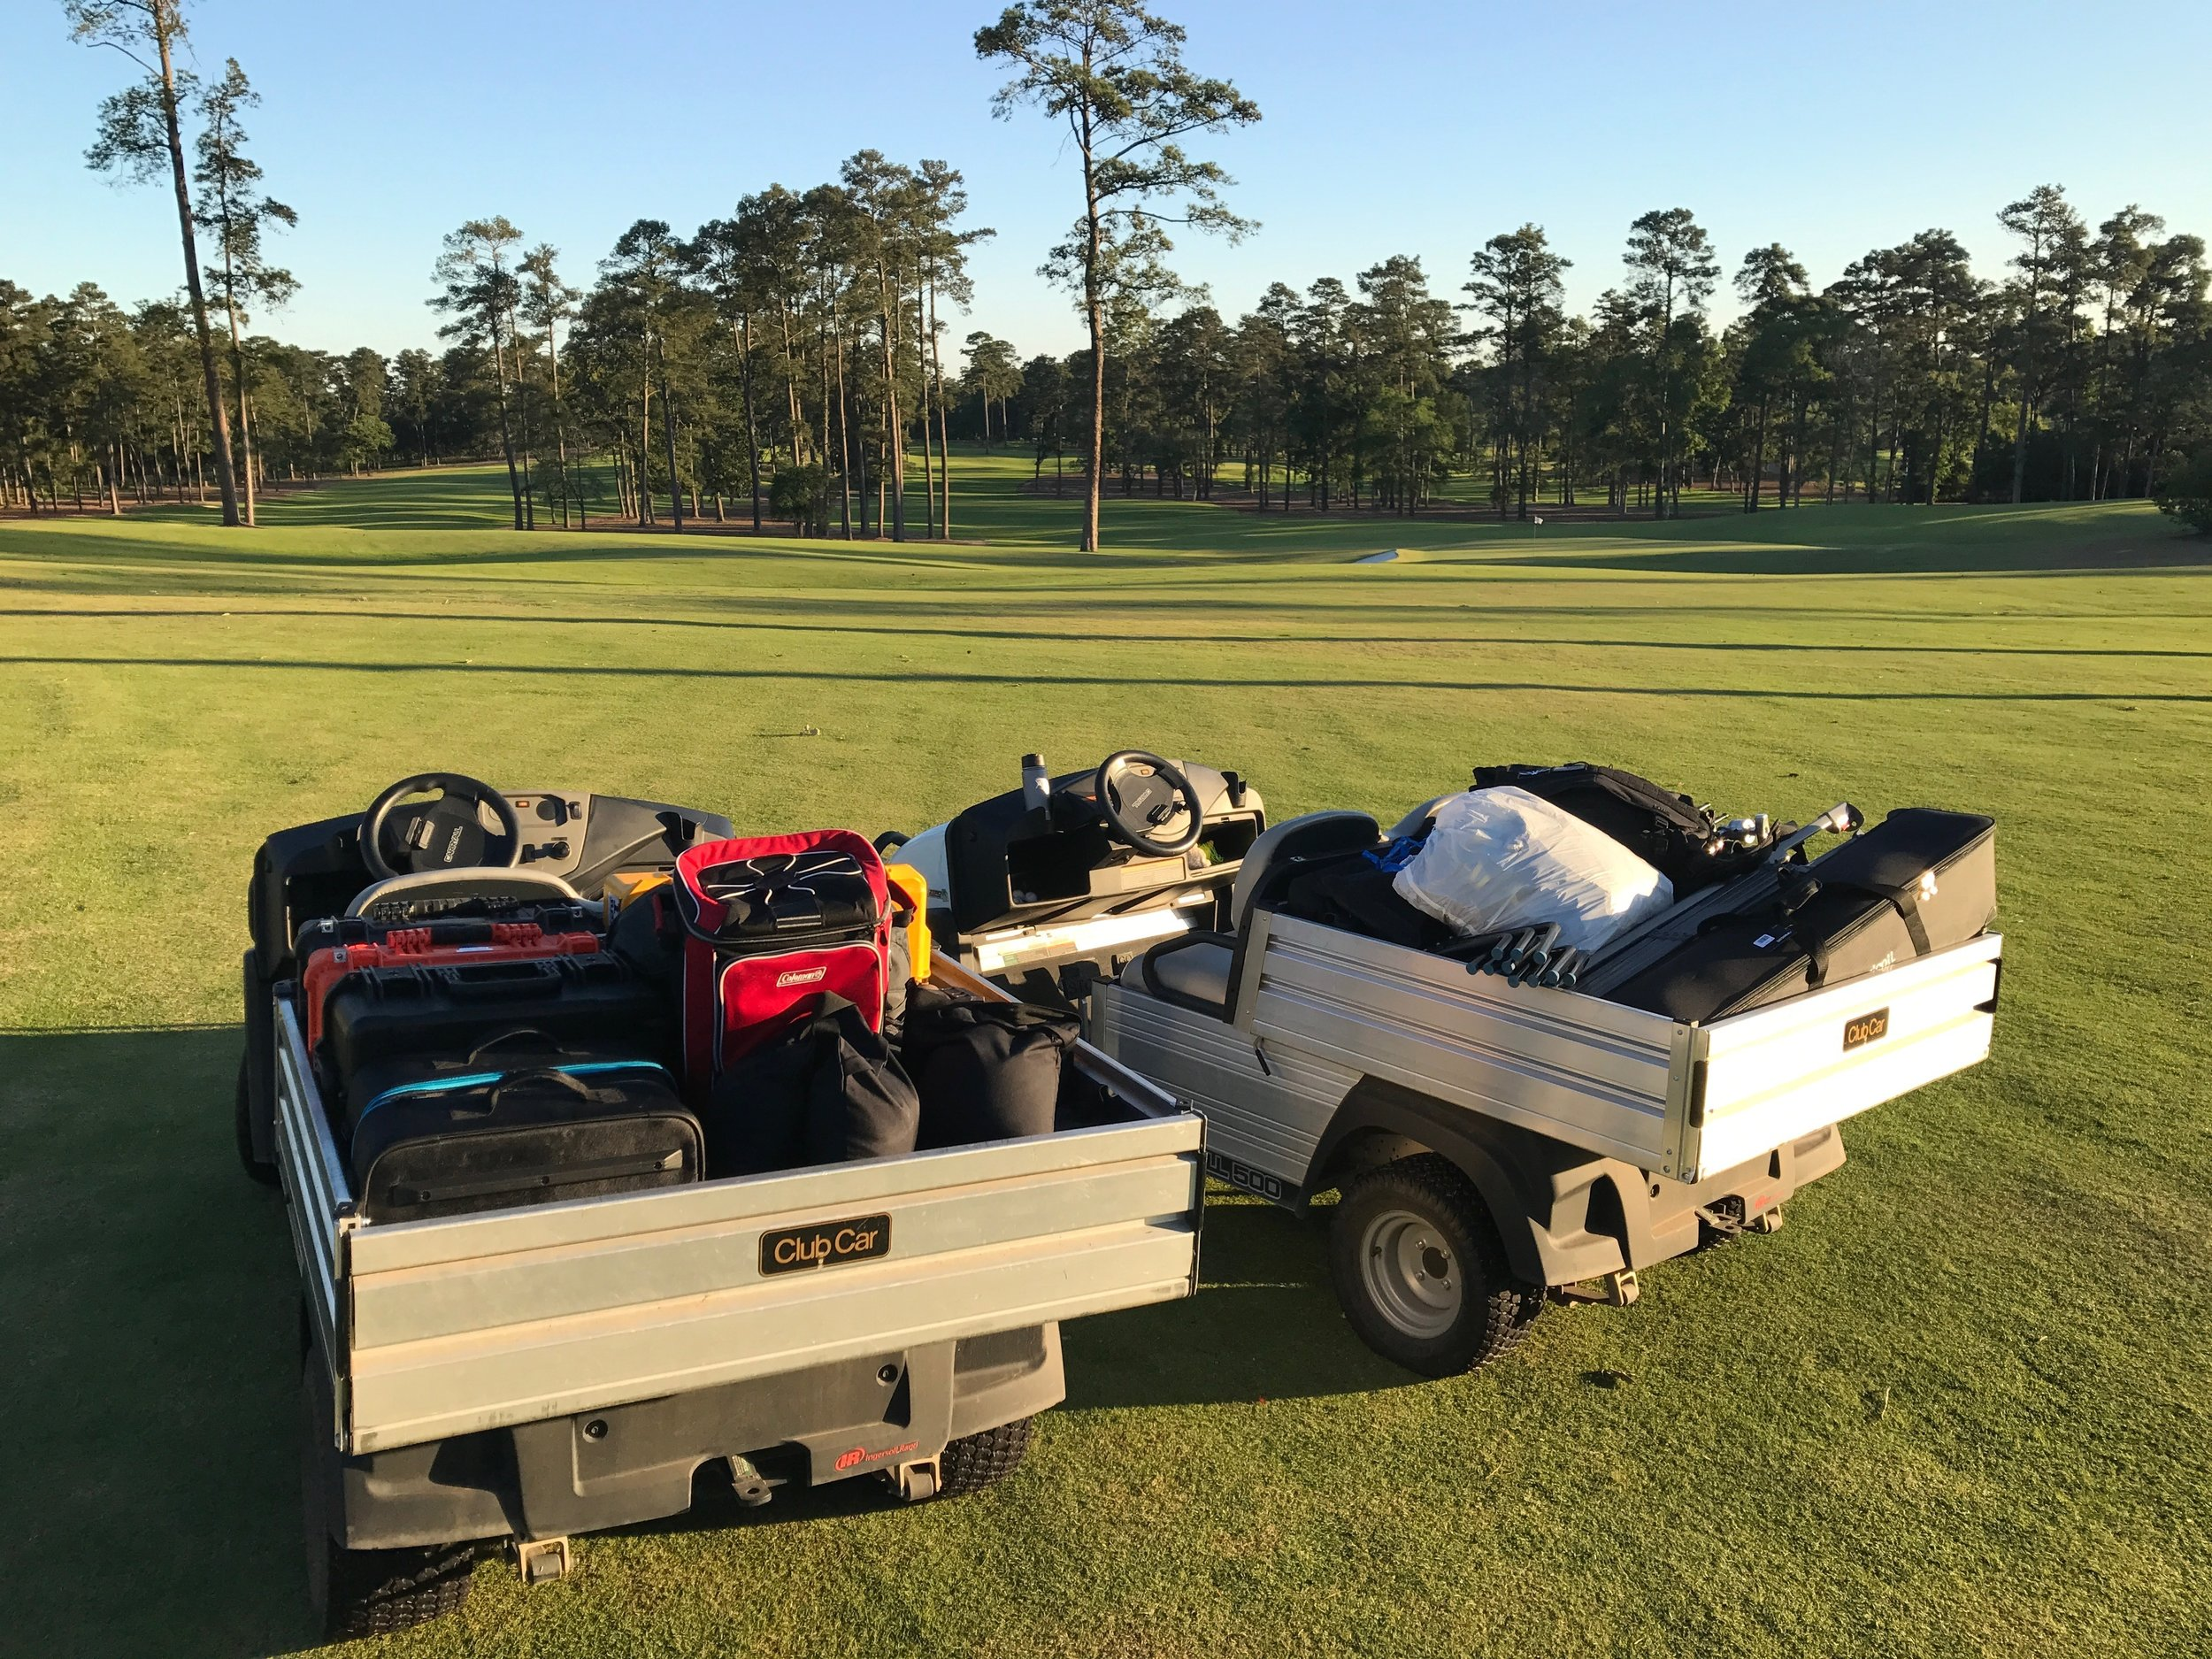 Tip #1: Always get the Club Car to haul your rig.